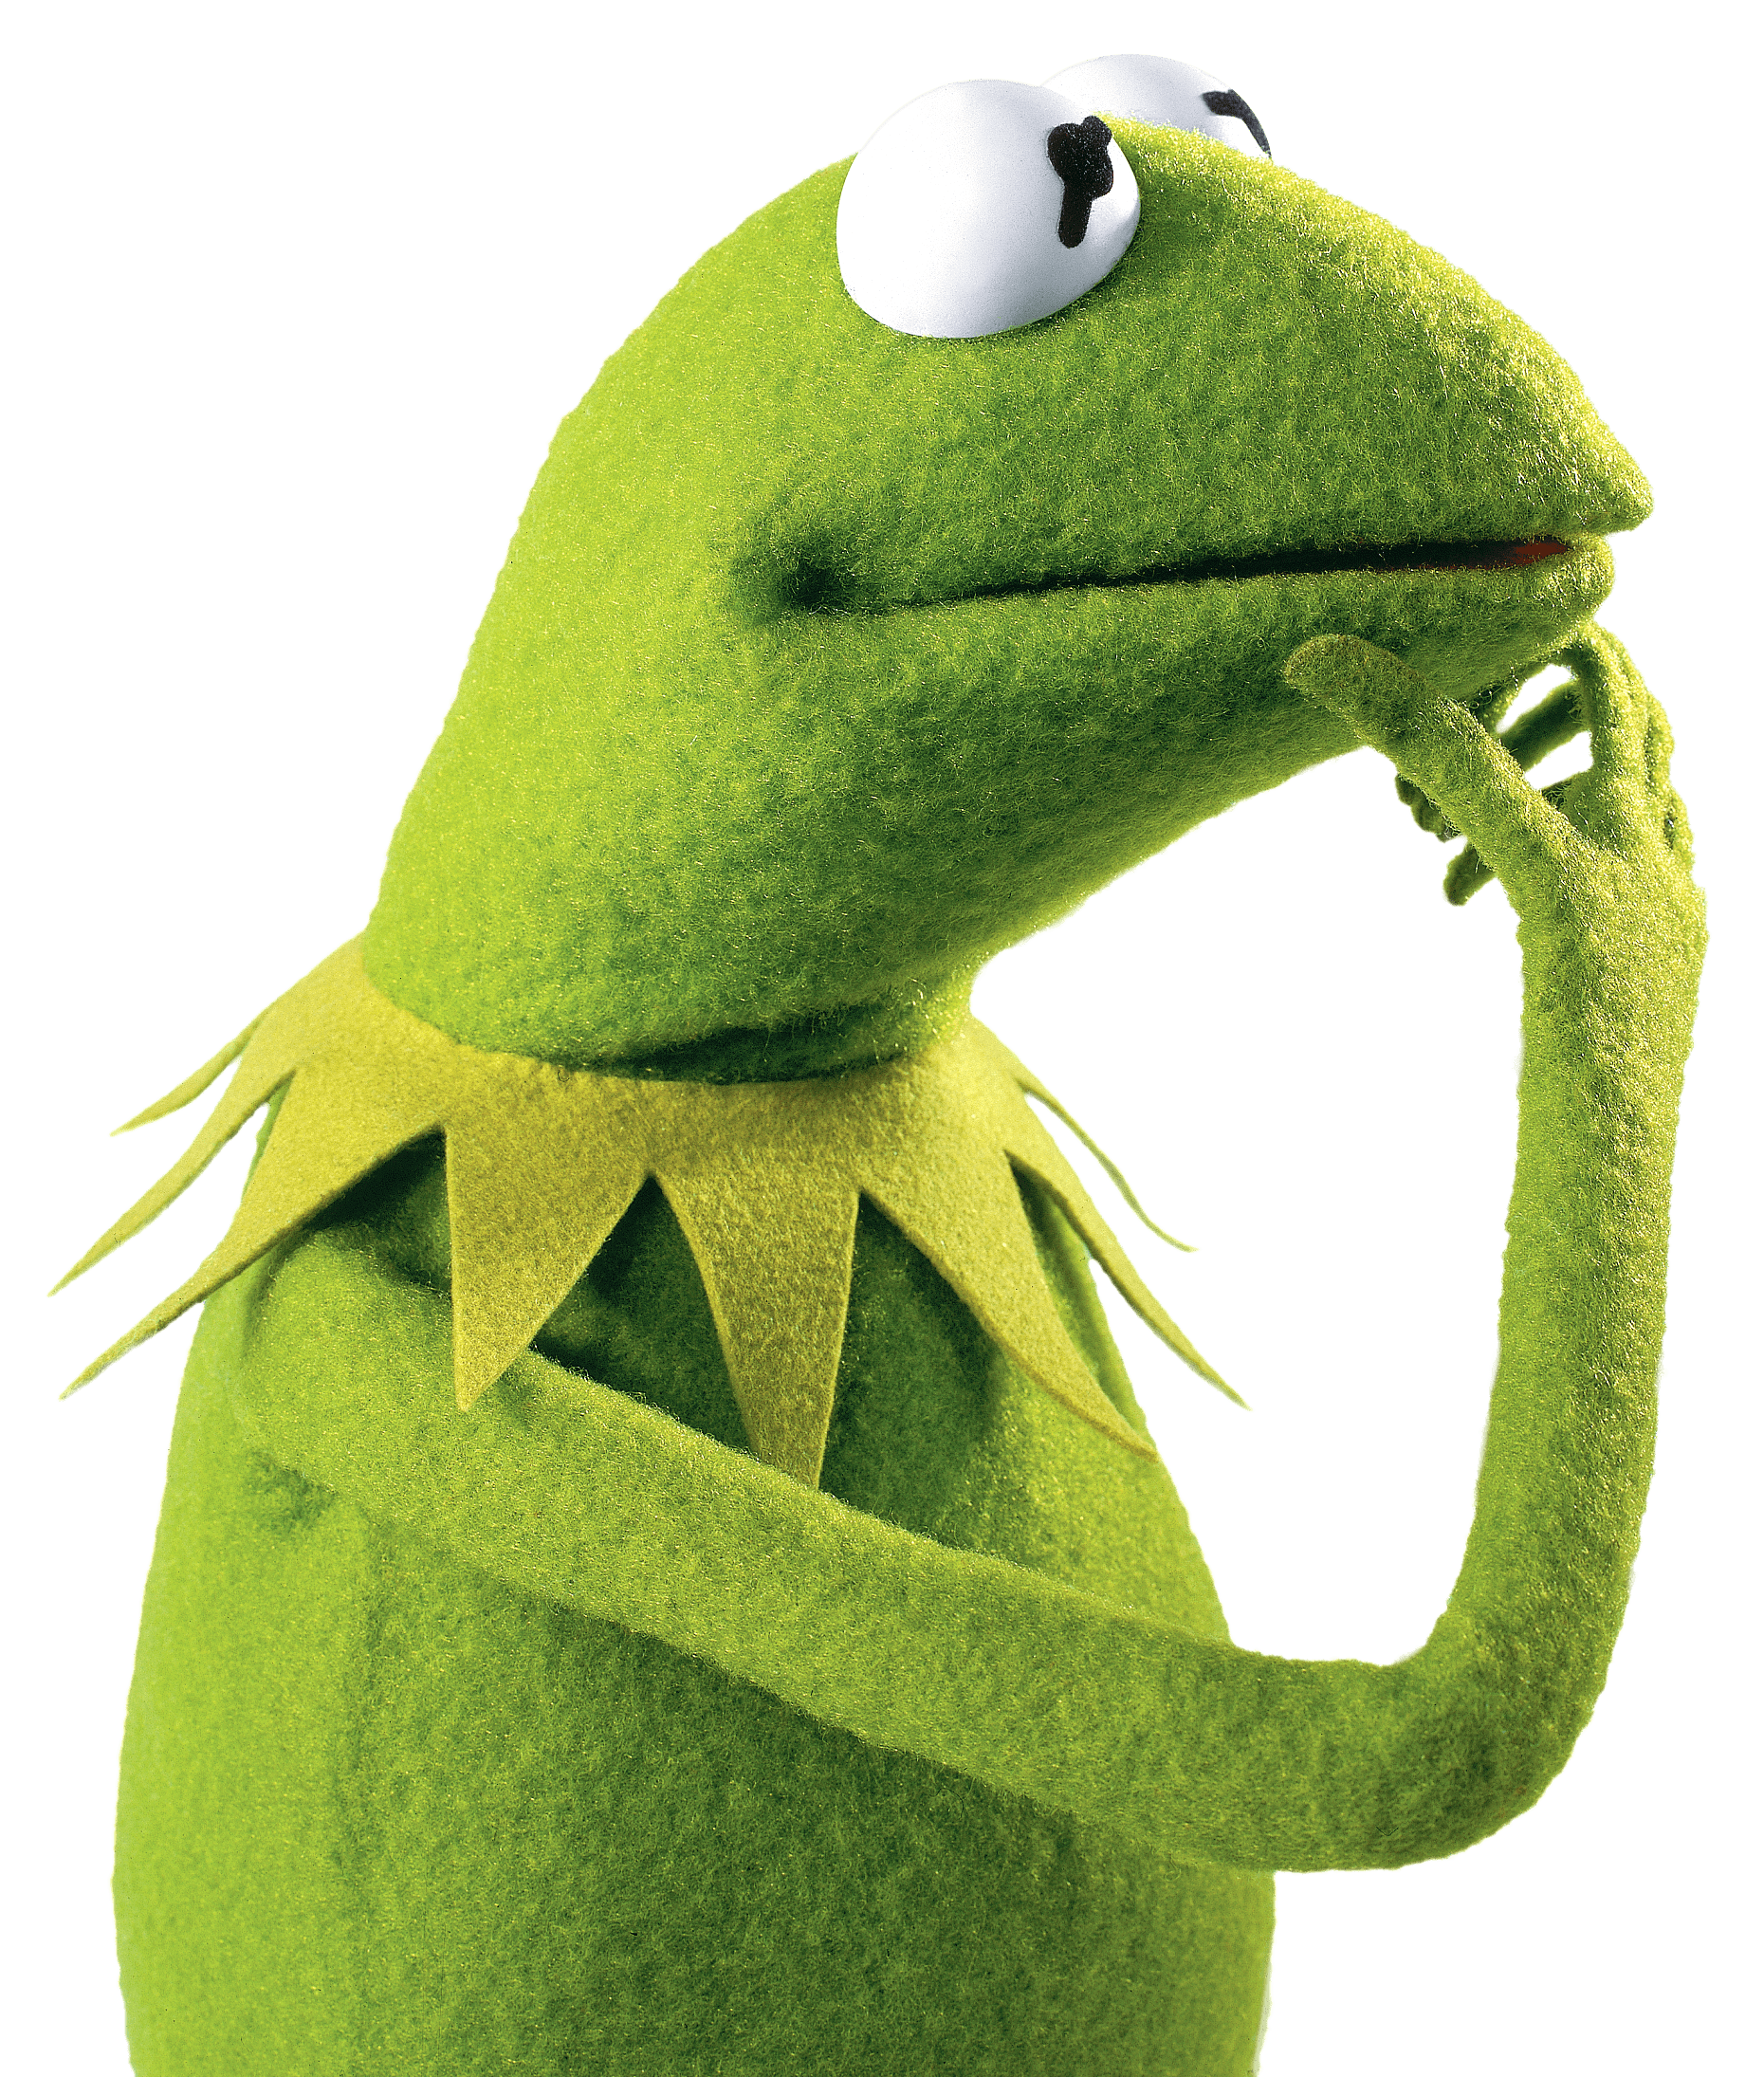 Kermit the Frog Thinking transparent PNG.